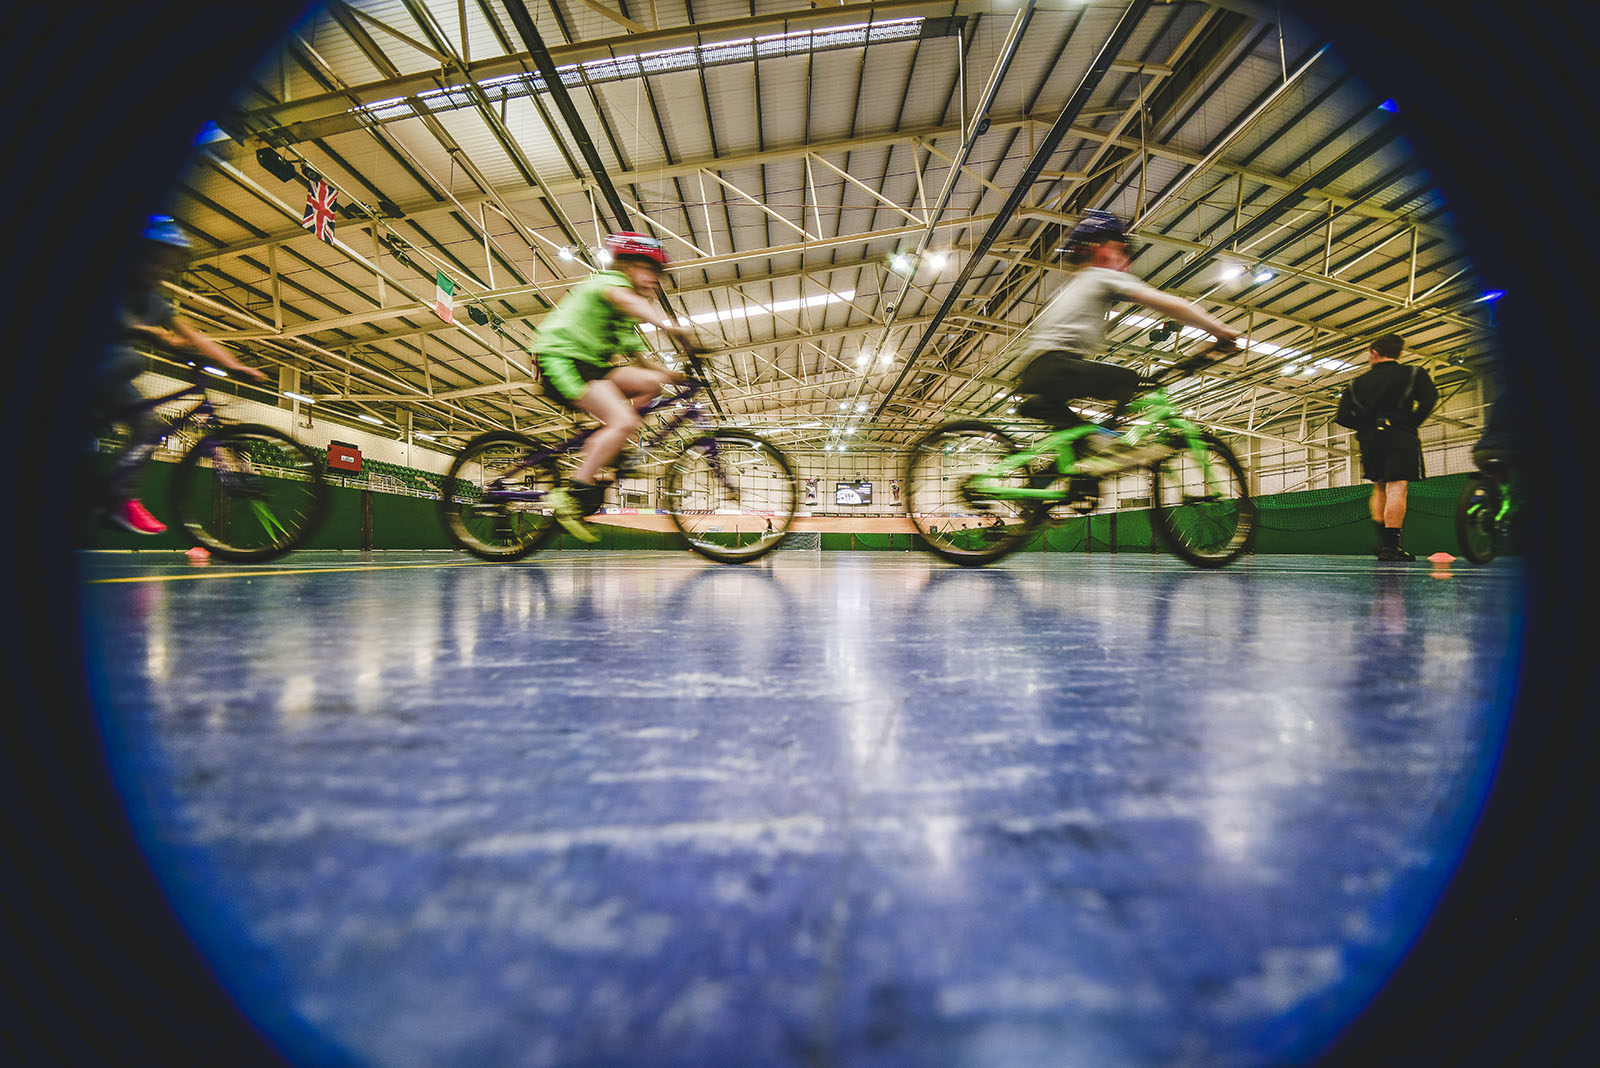 Blurred effect picture of two children cycling one behind the other